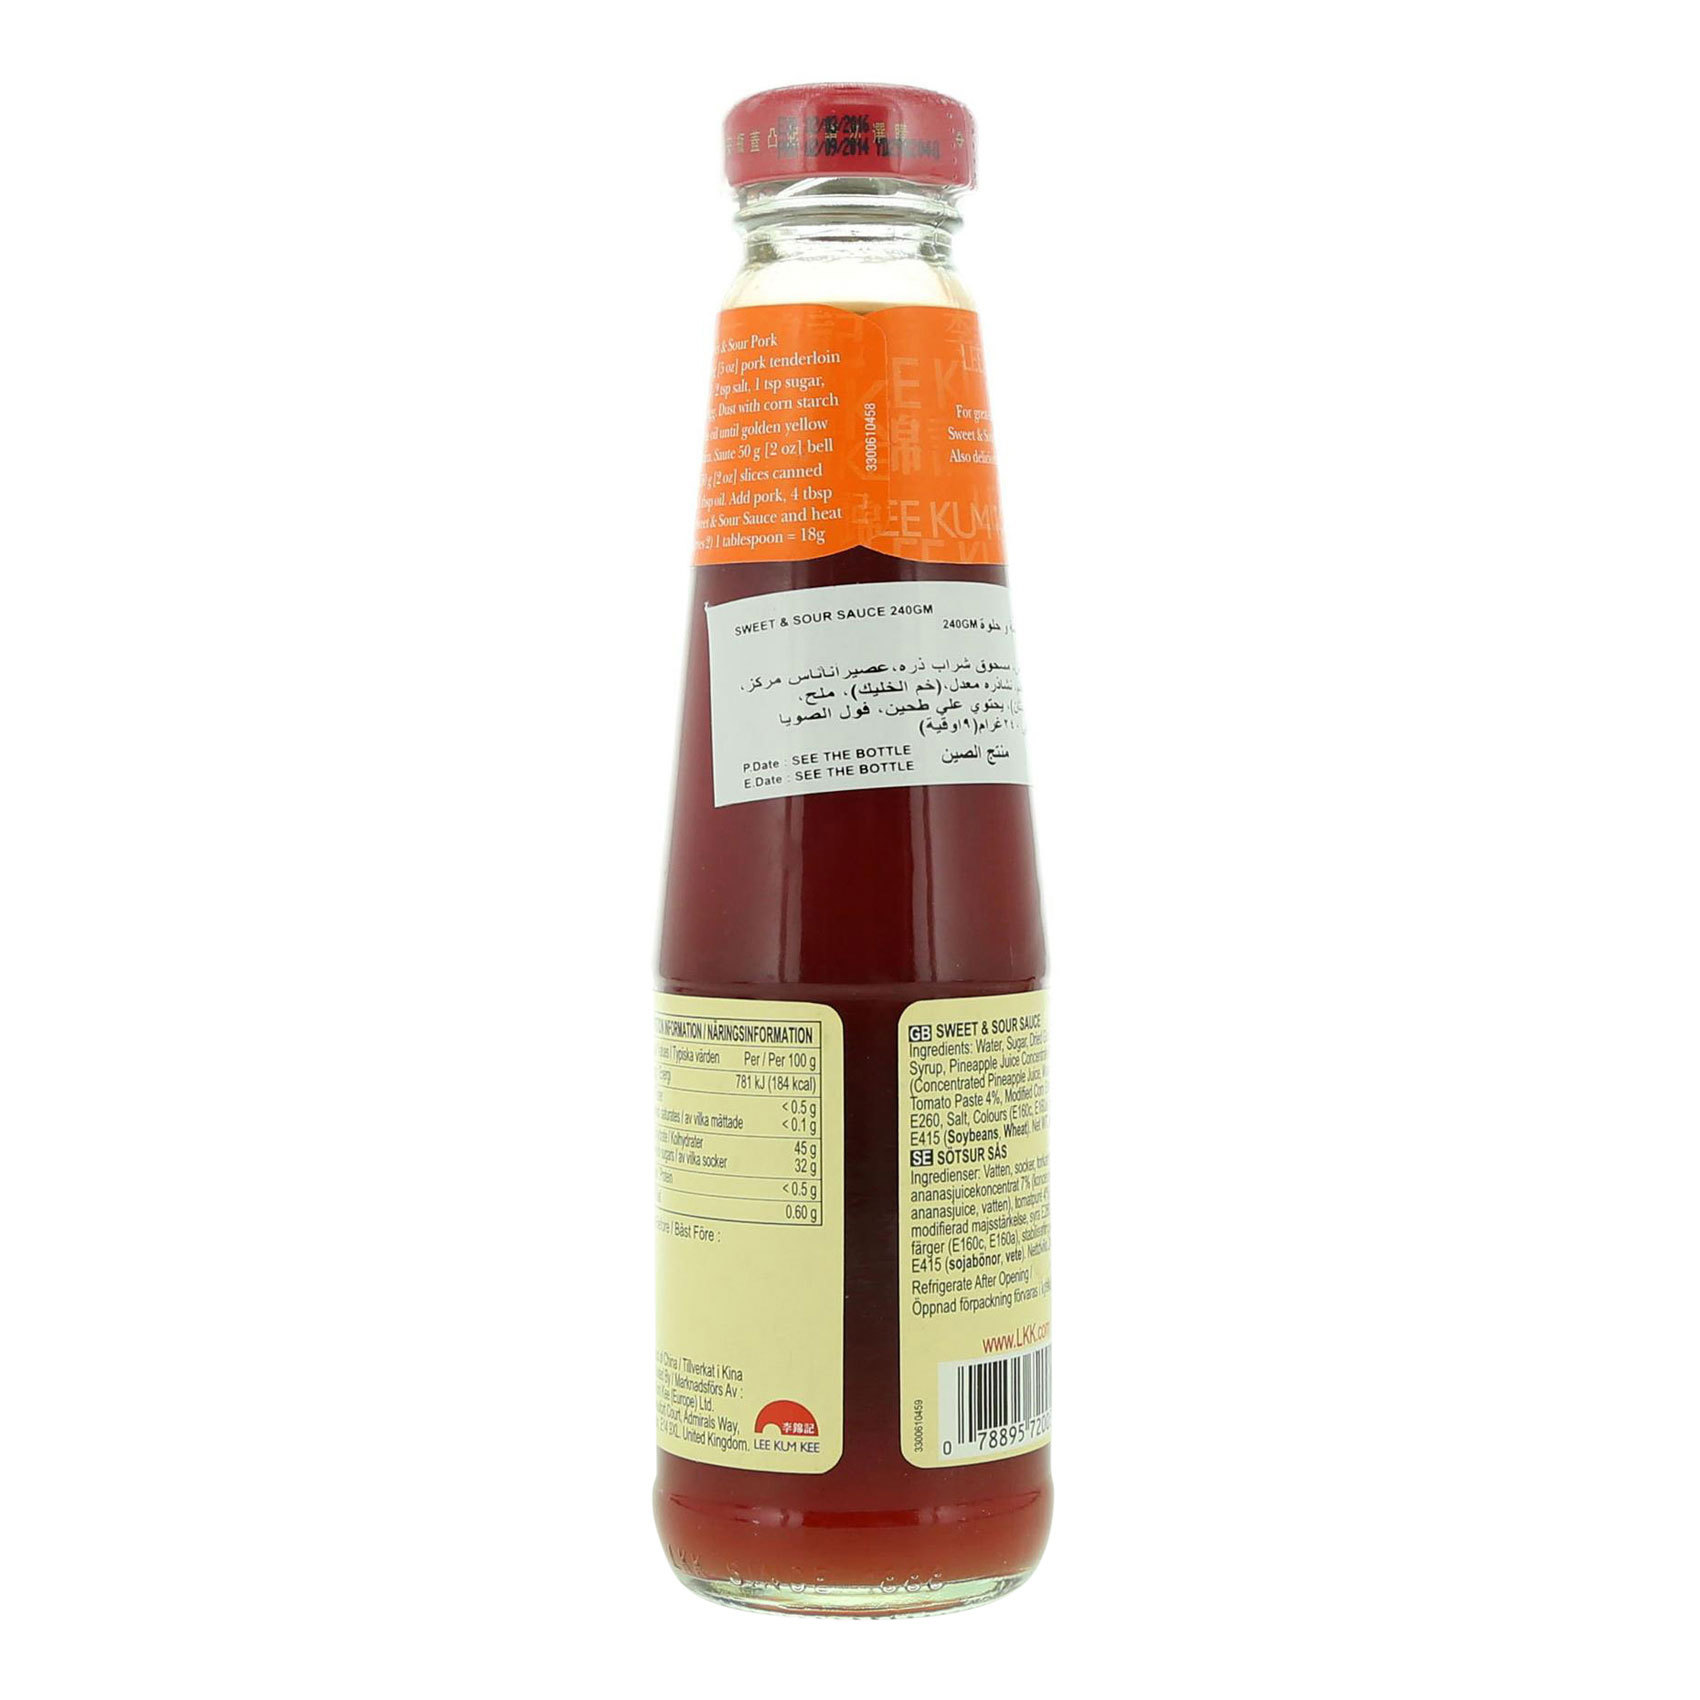 SWEET&SOUR SAUCE LKK 240GM